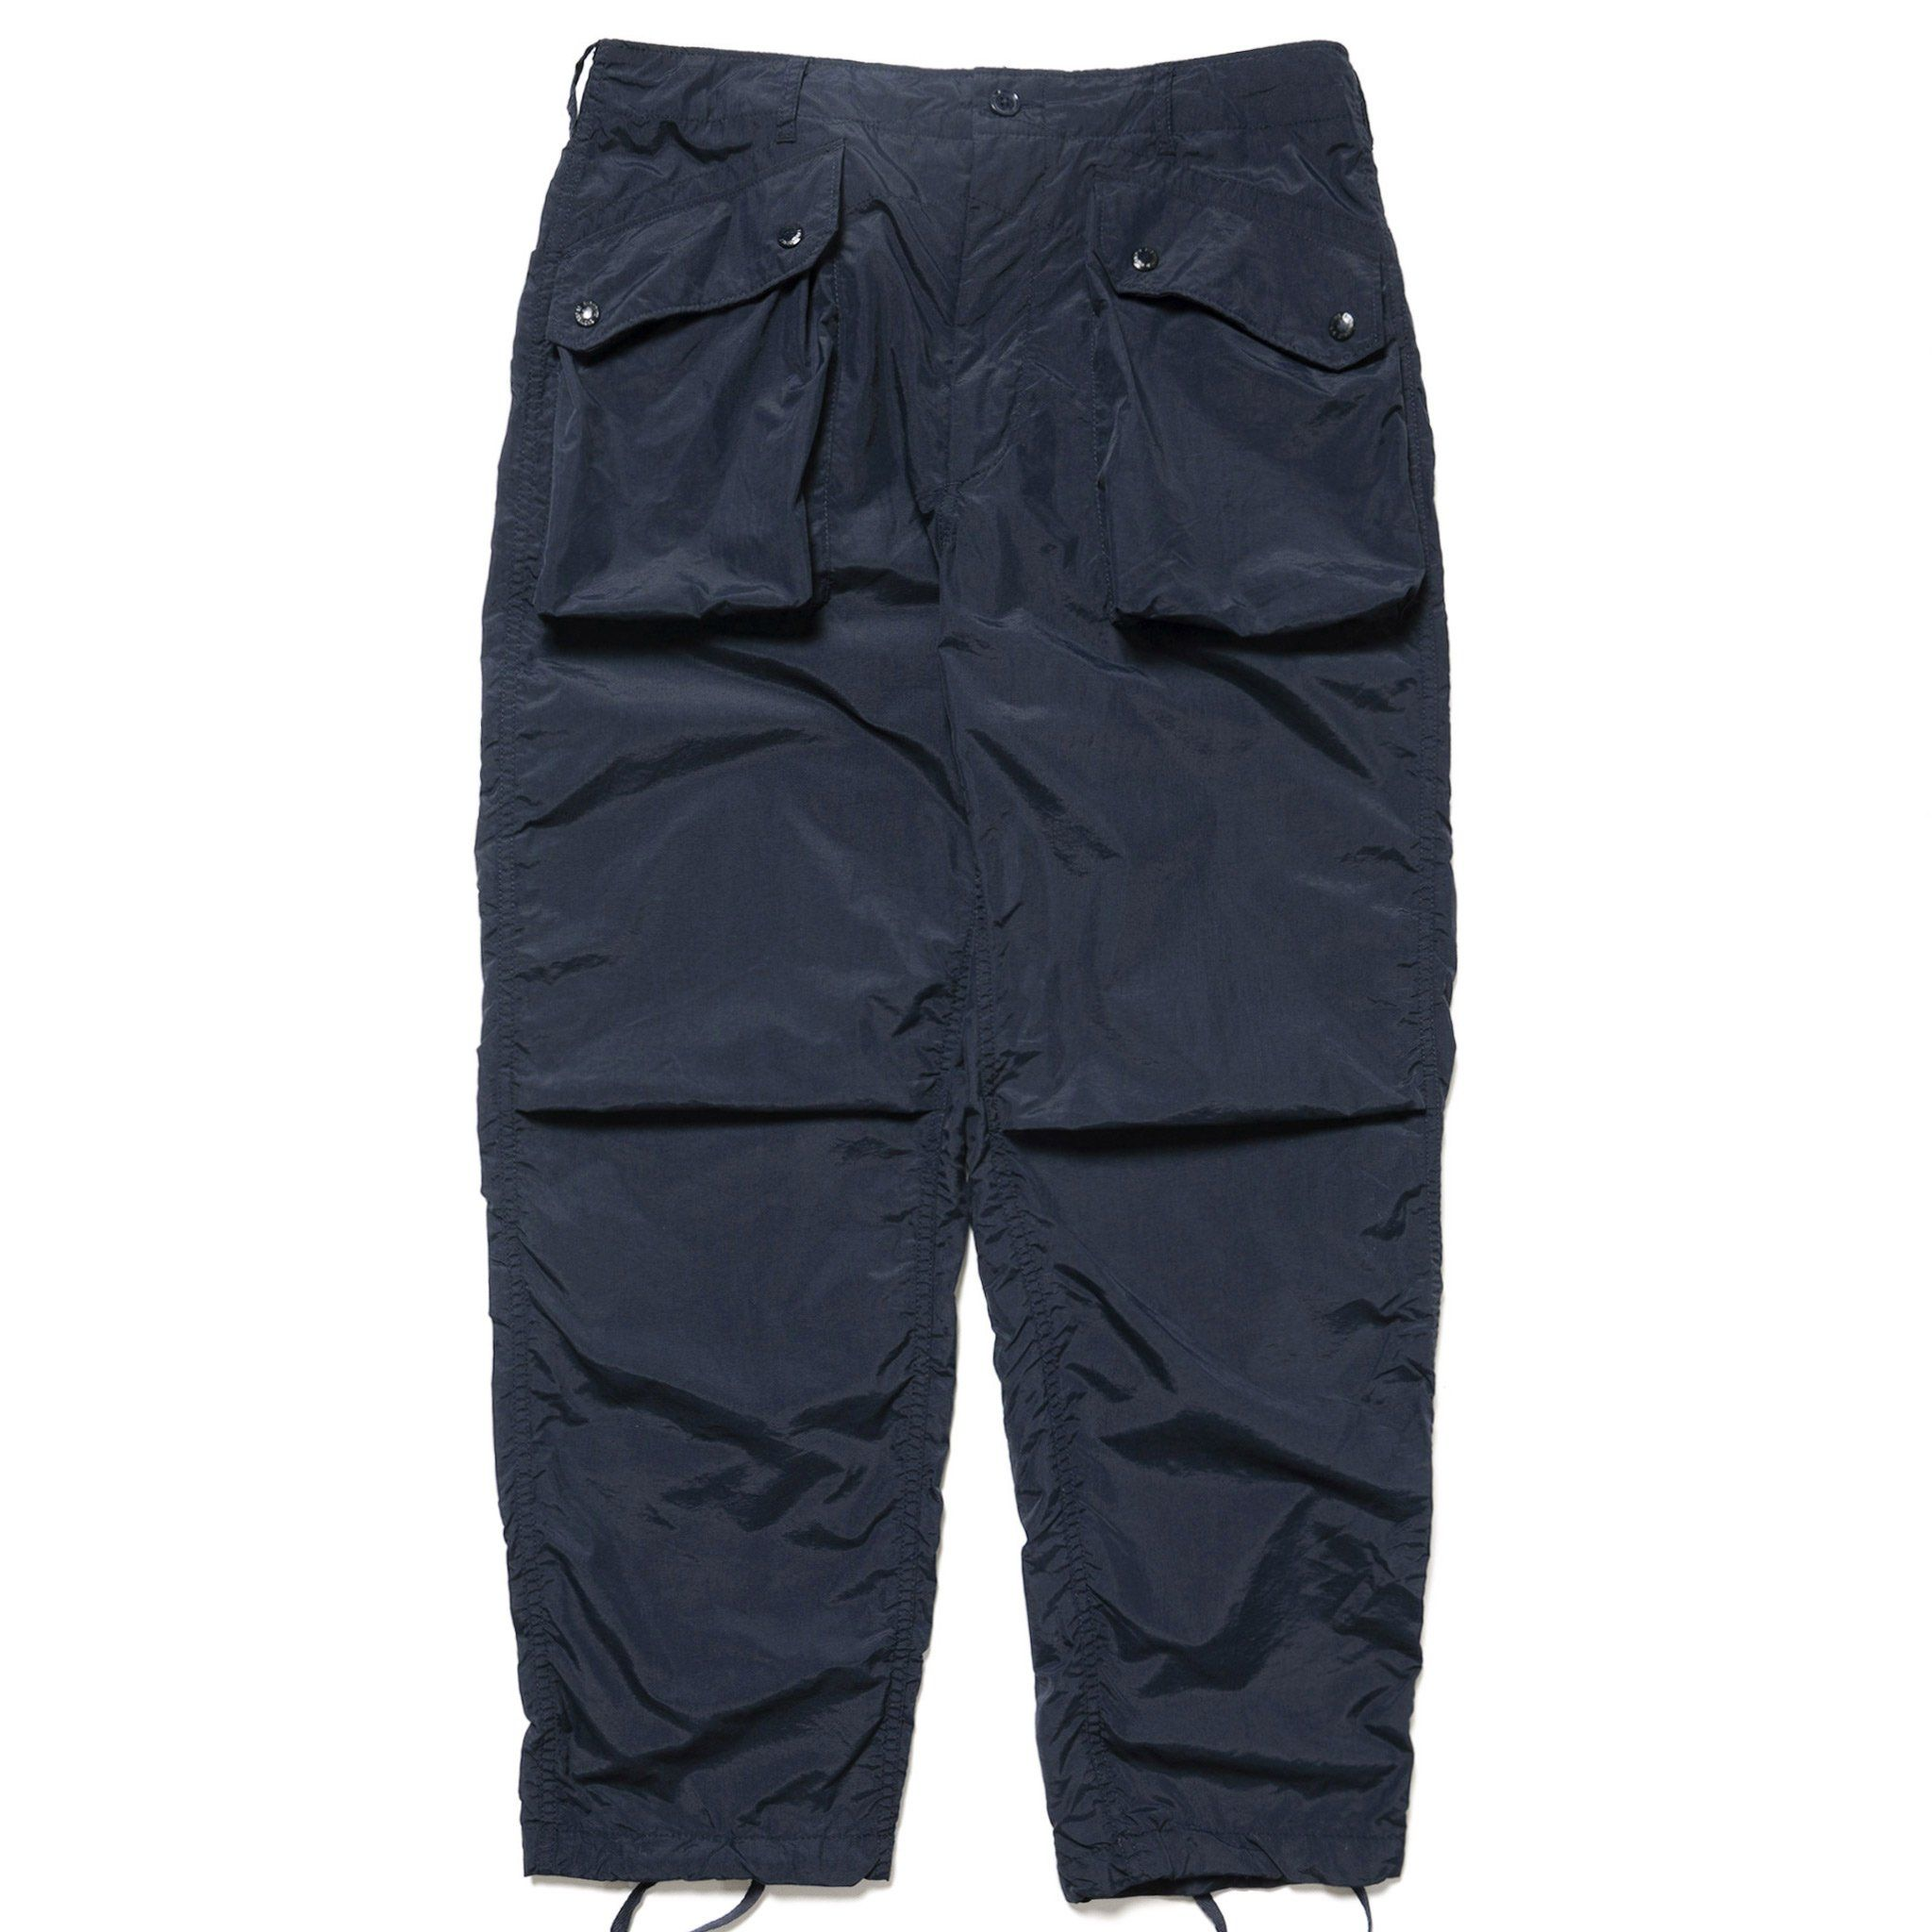 0dccb3d5ec458 Engineered Garments Acrylic Coated Taffeta Norwegian Pant Navy, Bottoms